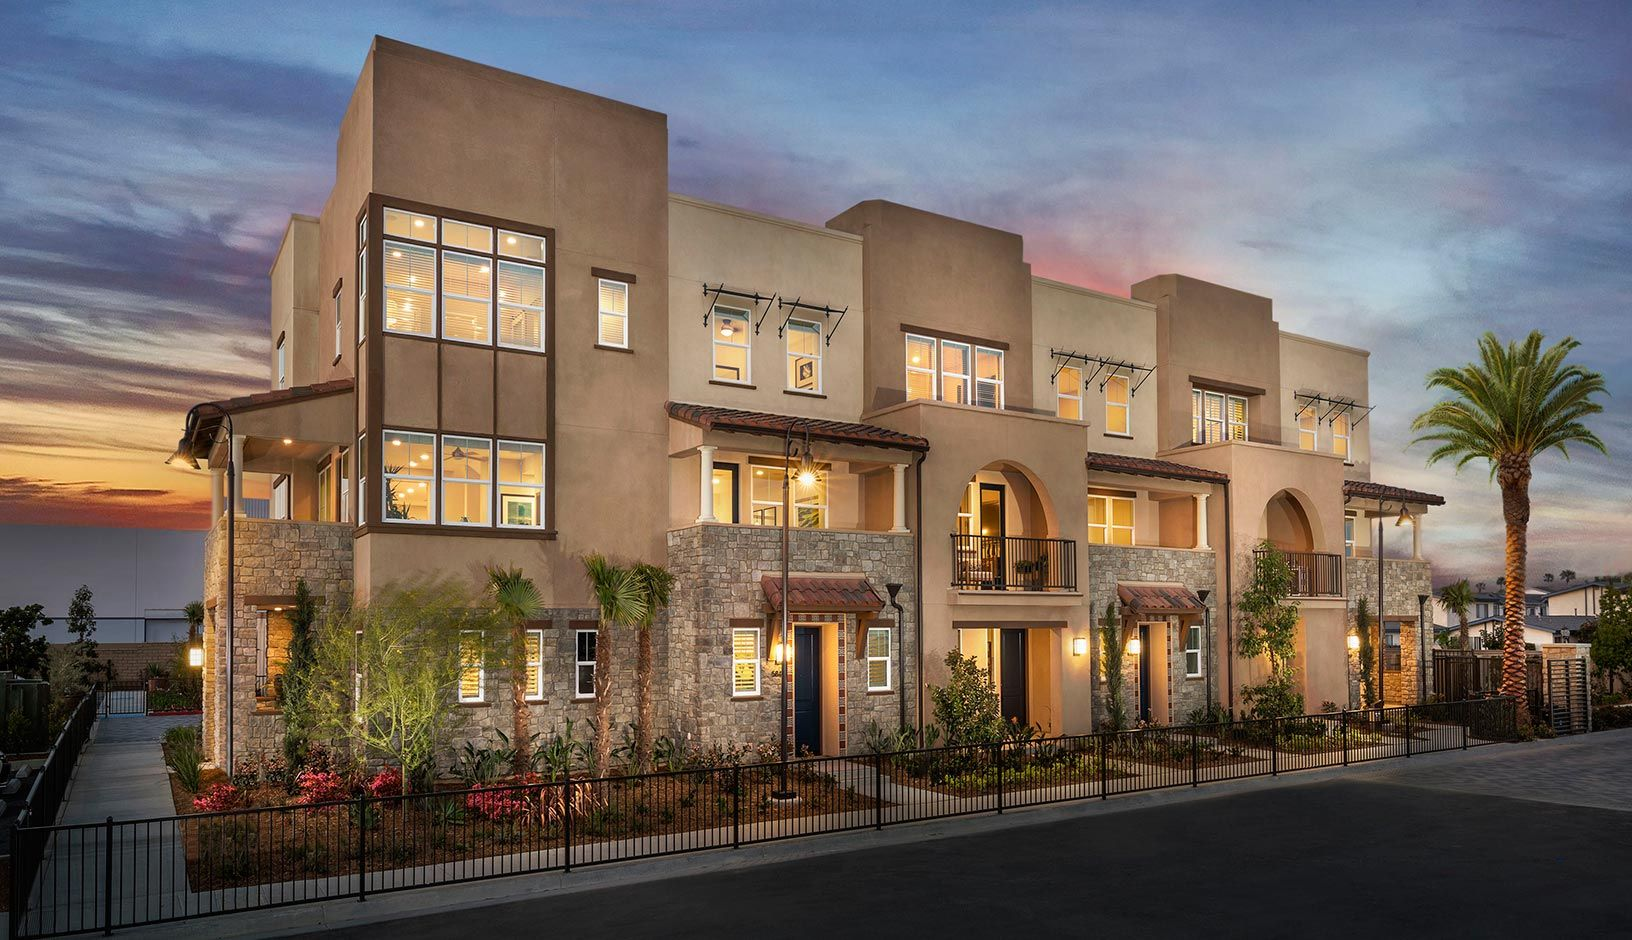 Single Family for Sale at Stratapointe - Residence 1 5856 Spring Street Buena Park, California 90620 United States